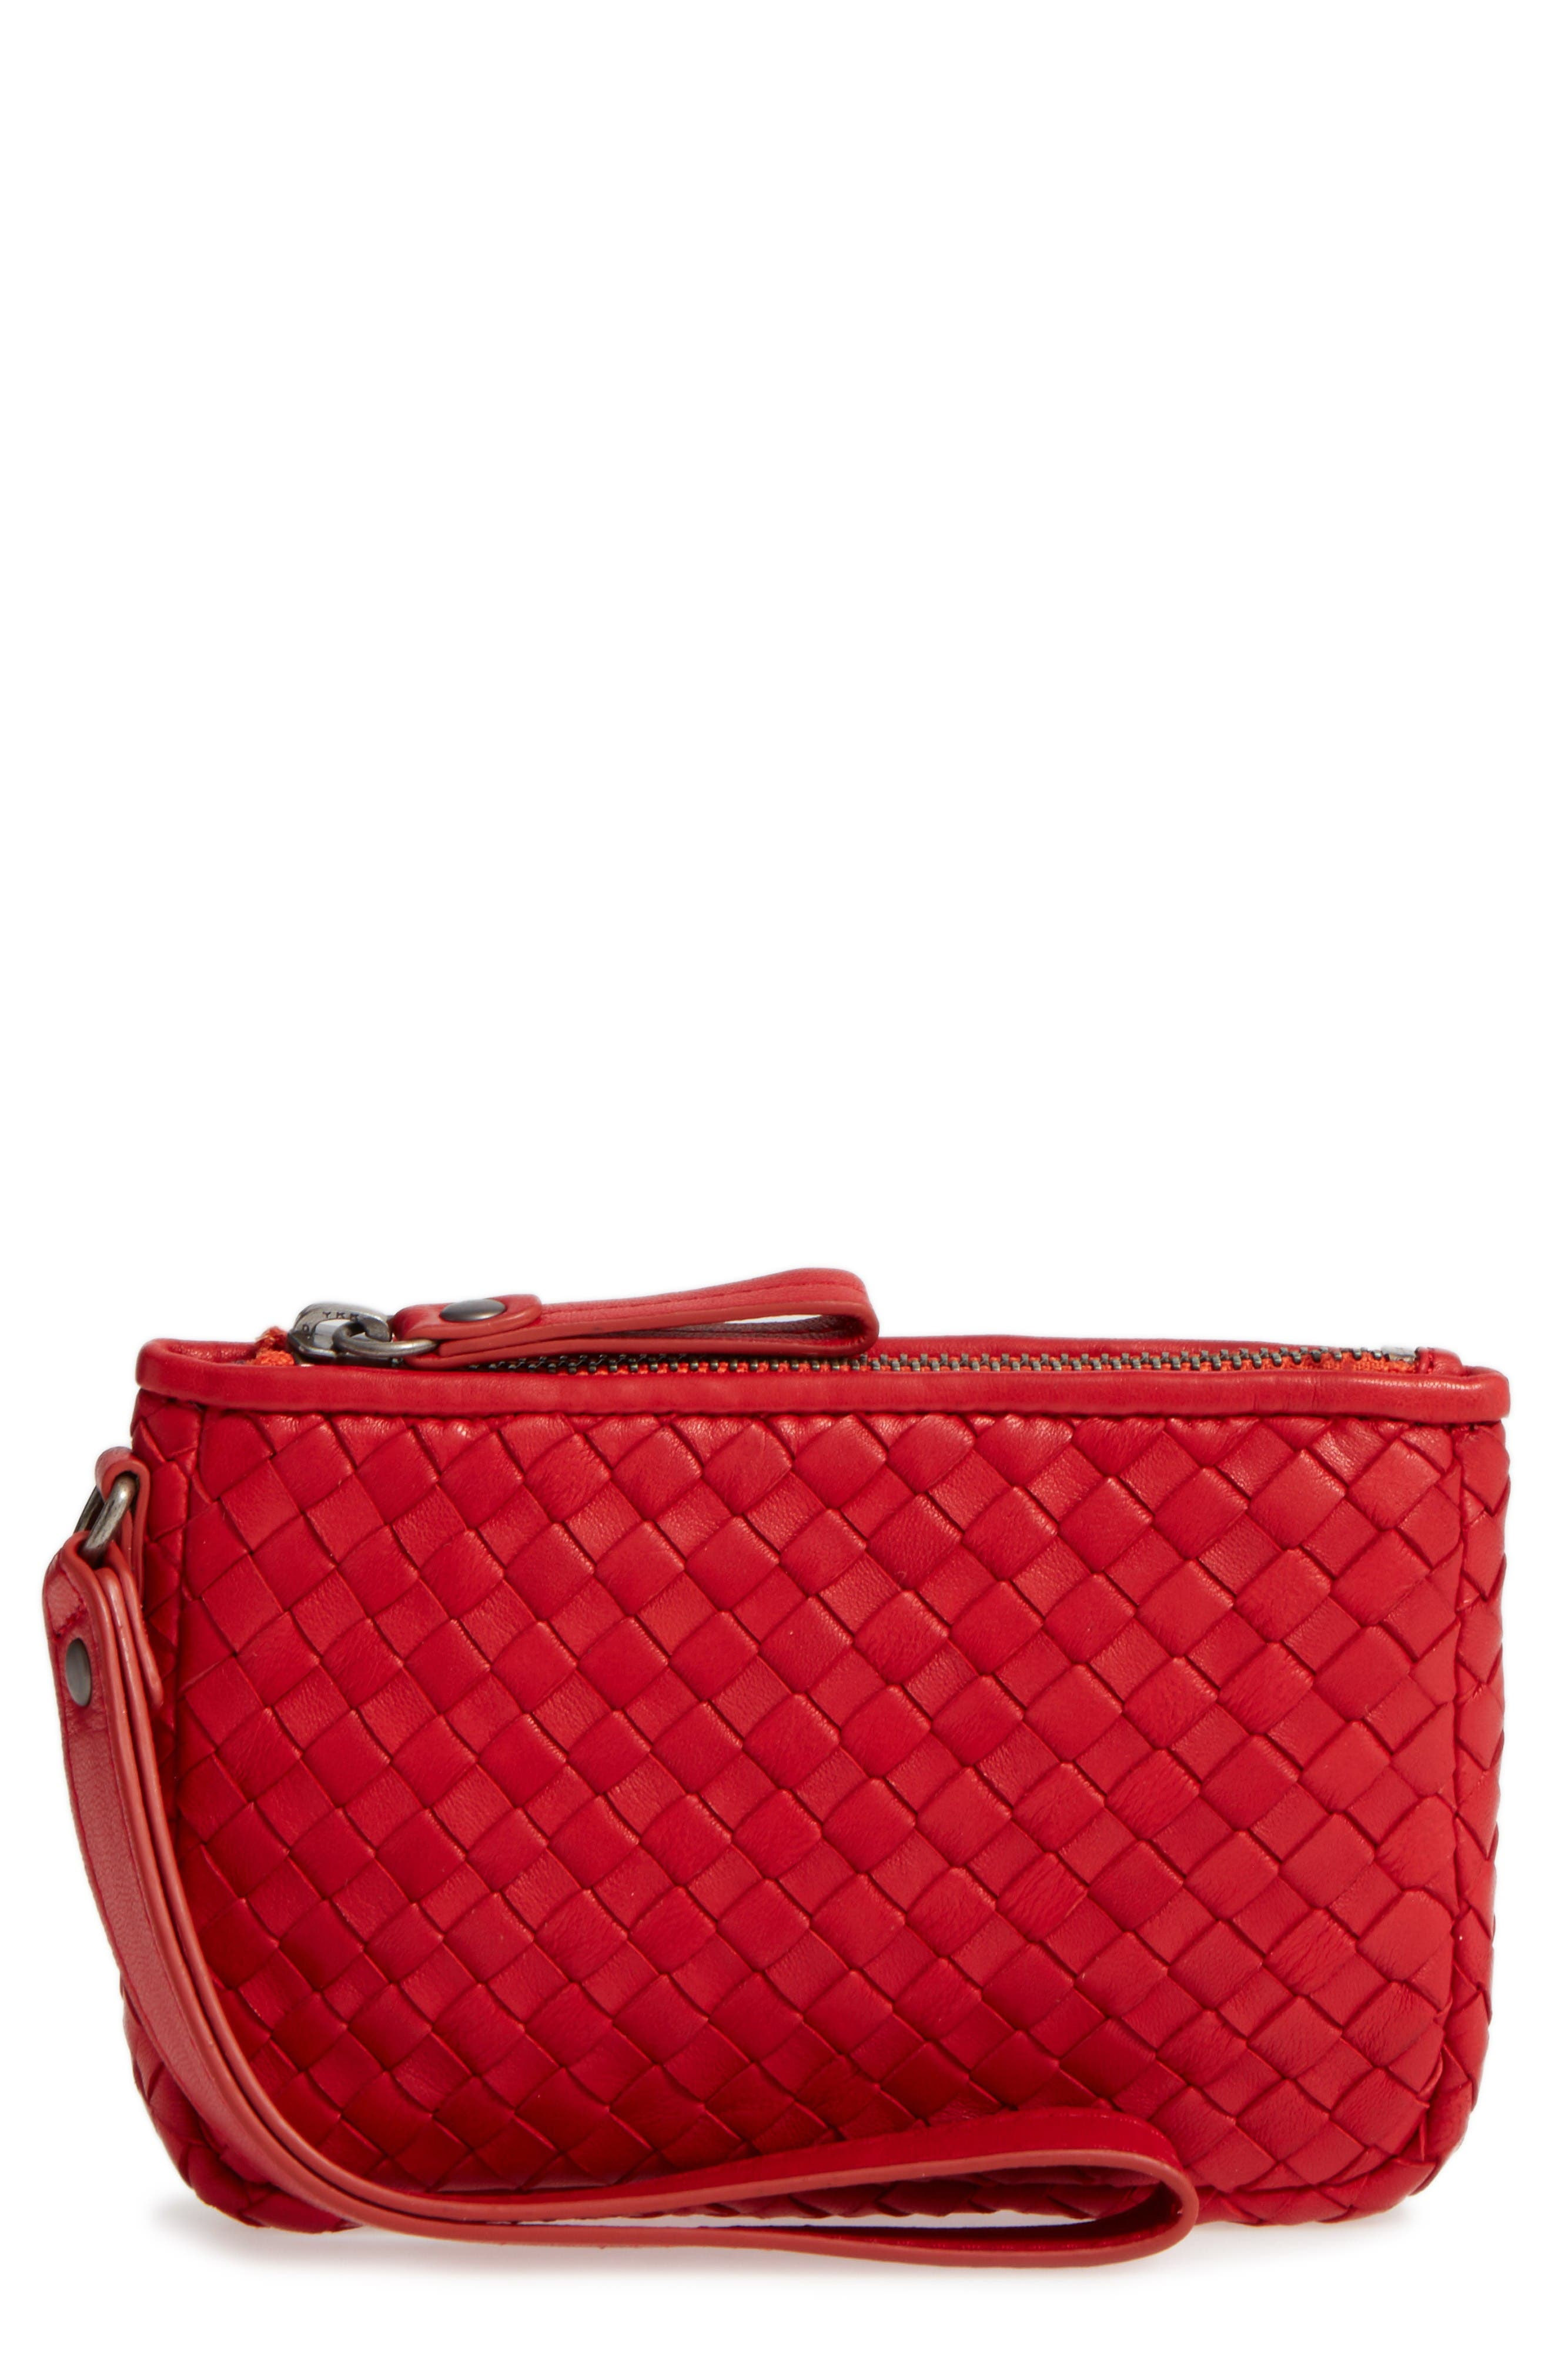 Alternate Image 1 Selected - Robert Zur Small Maya Leather Clutch